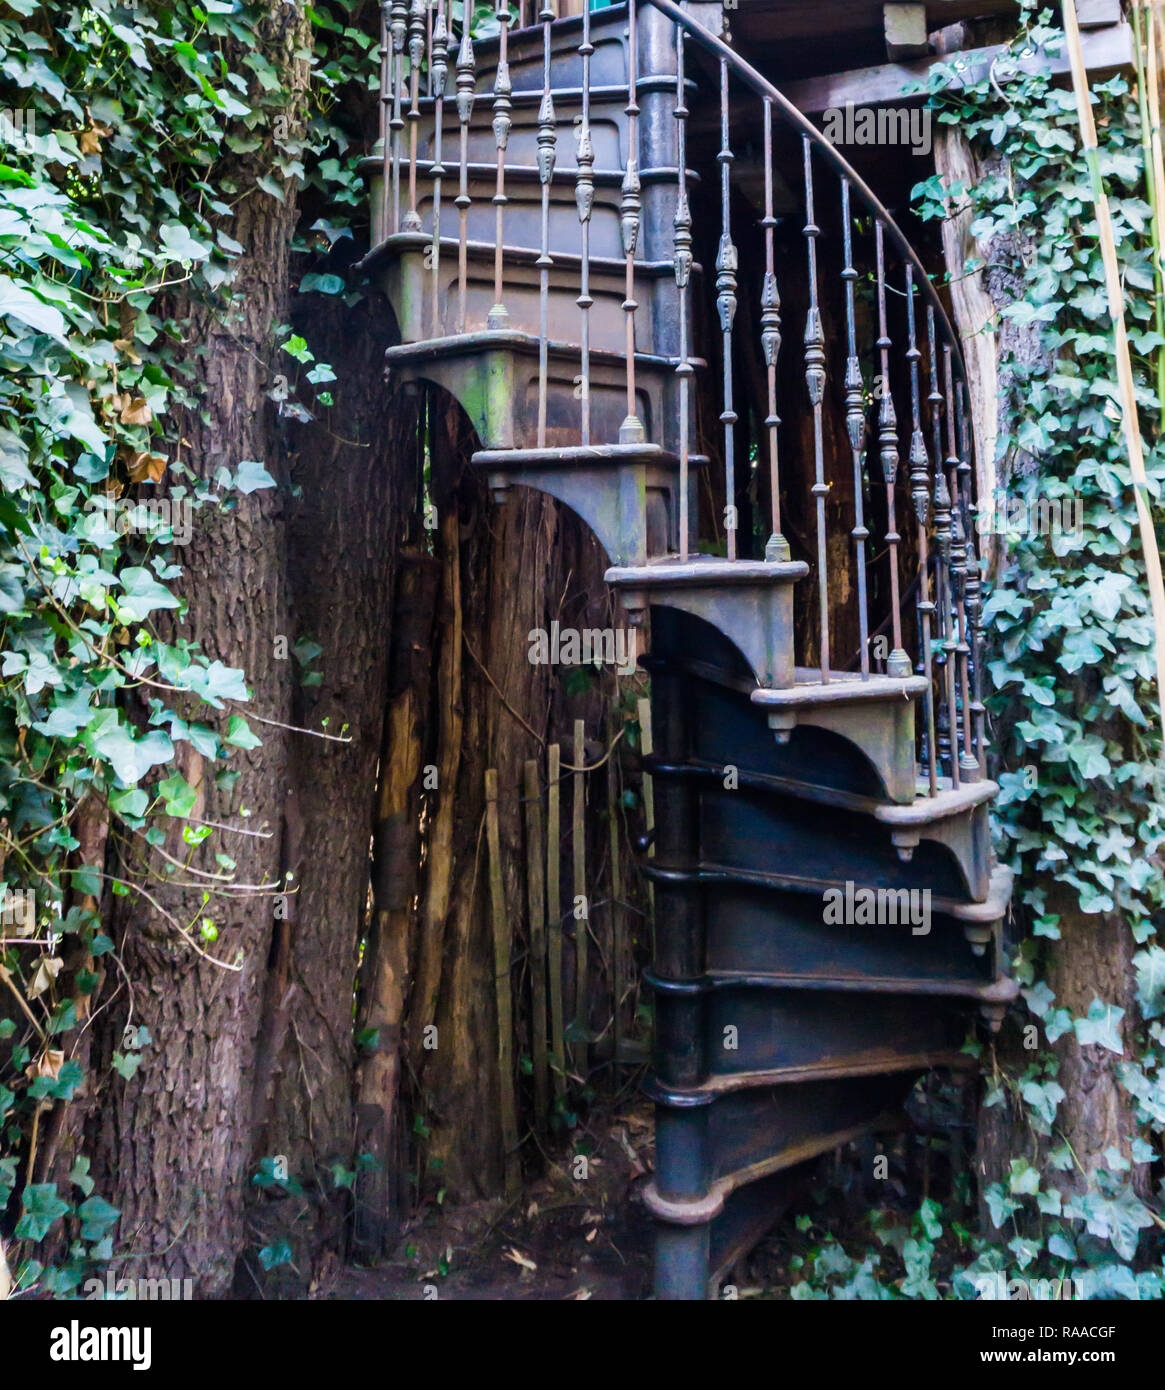 Vintage Iron Spiral Staircase In A Garden Outdoor Architecture | Iron Spiral Staircase For Sale | Grey Exterior | Wrought Iron | Ornate | Helical Staircase | Architectural Salvage